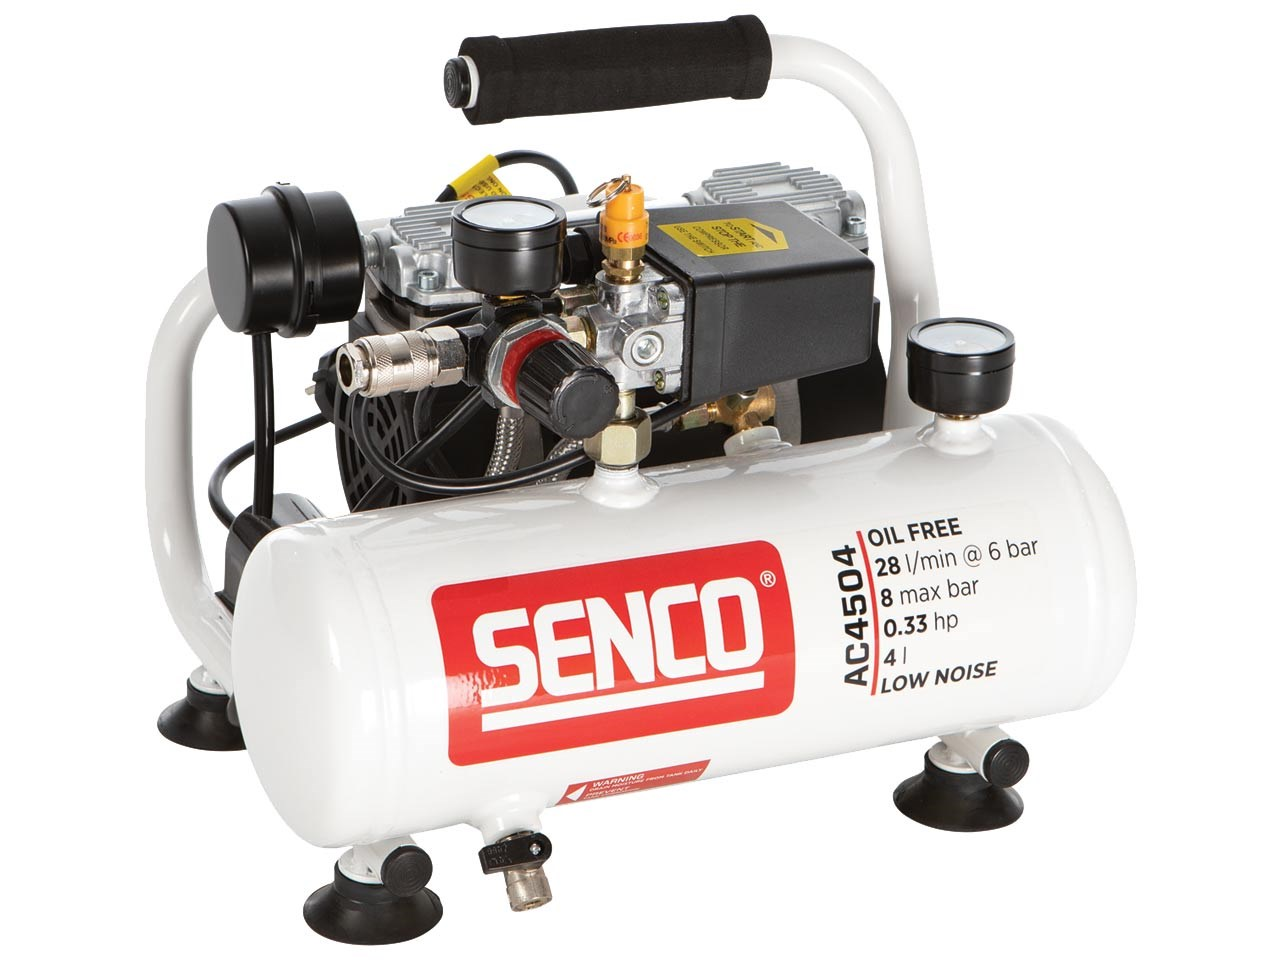 Senco TP4504 8BAR stille compressor